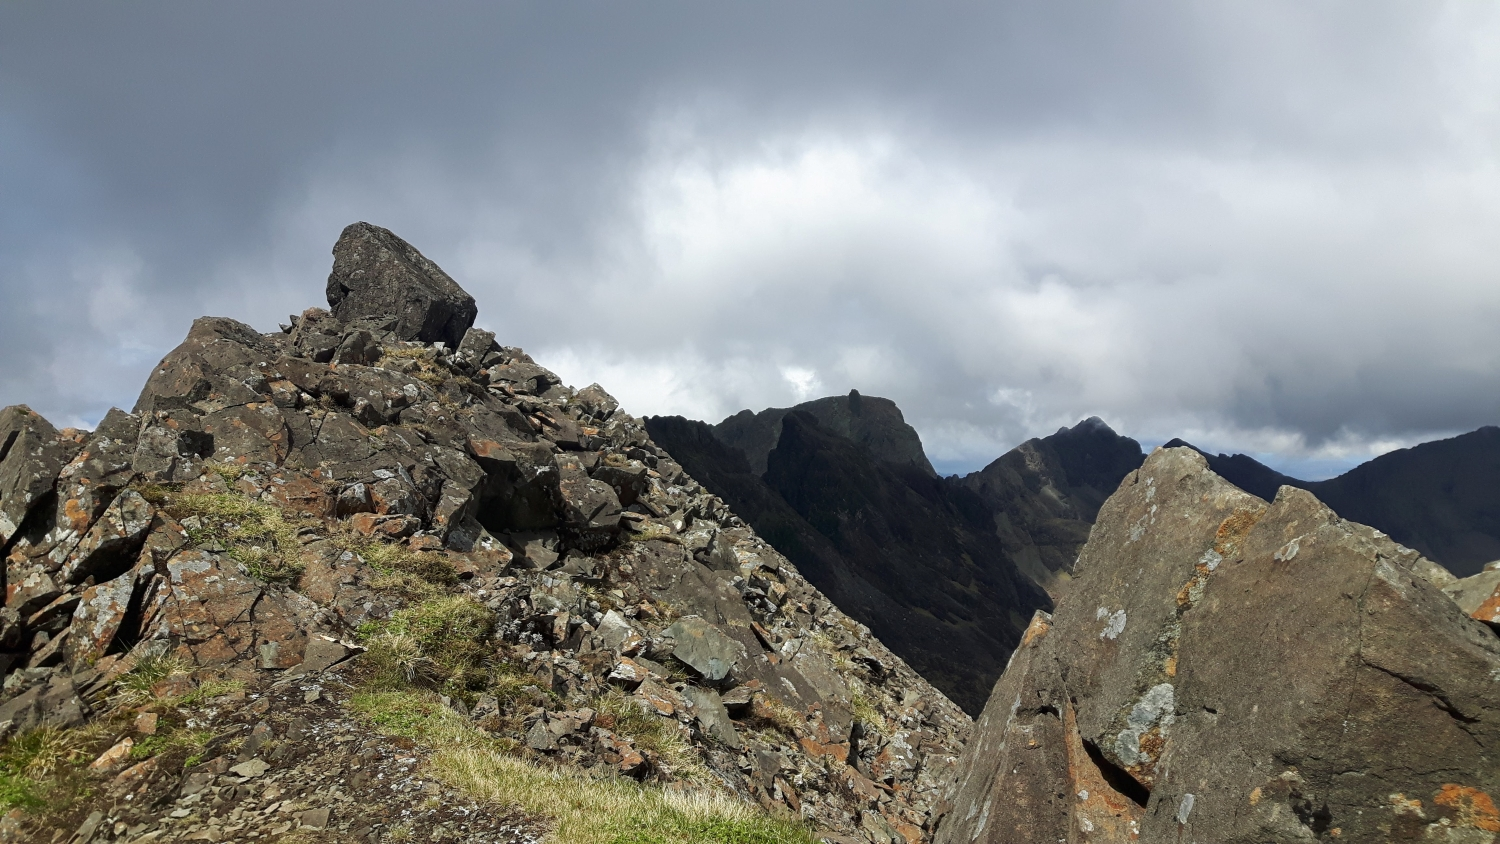 Looking north from Sgurr nan Eag